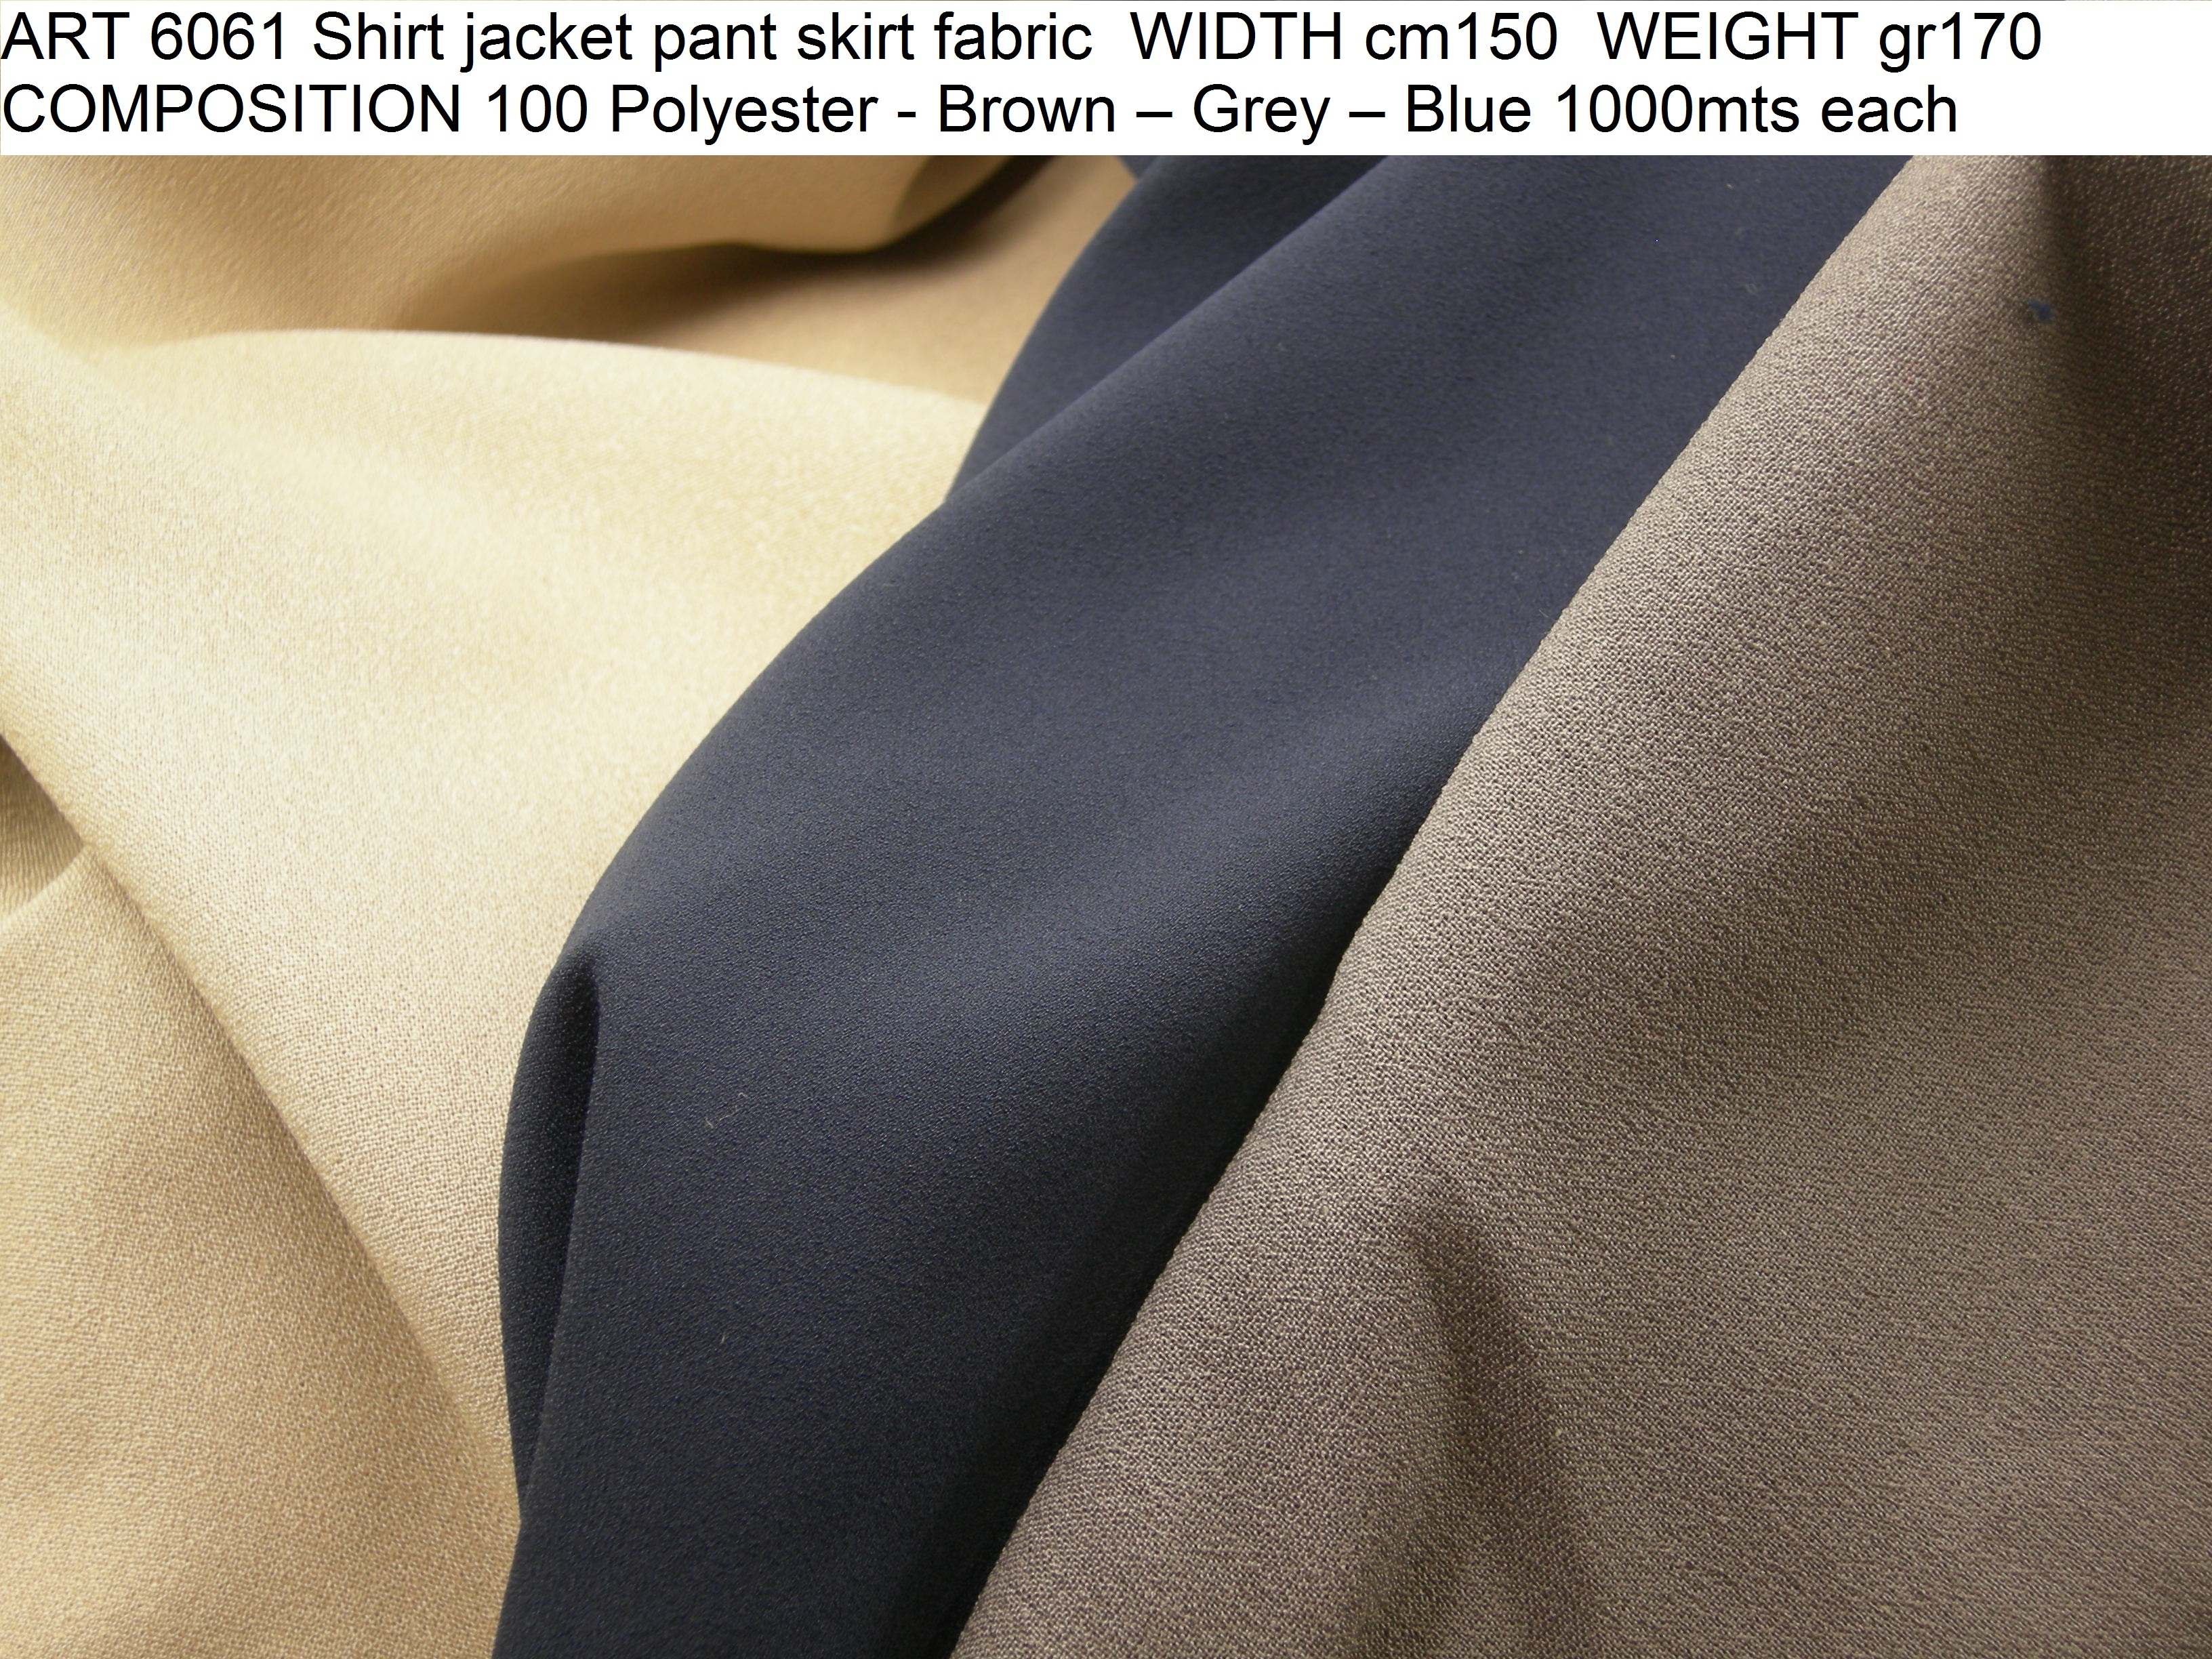 ART 6061 Shirt jacket pant skirt fabric WIDTH cm150 WEIGHT gr170 COMPOSITION 100 Polyester - Brown – Grey – Blue 1000mts each